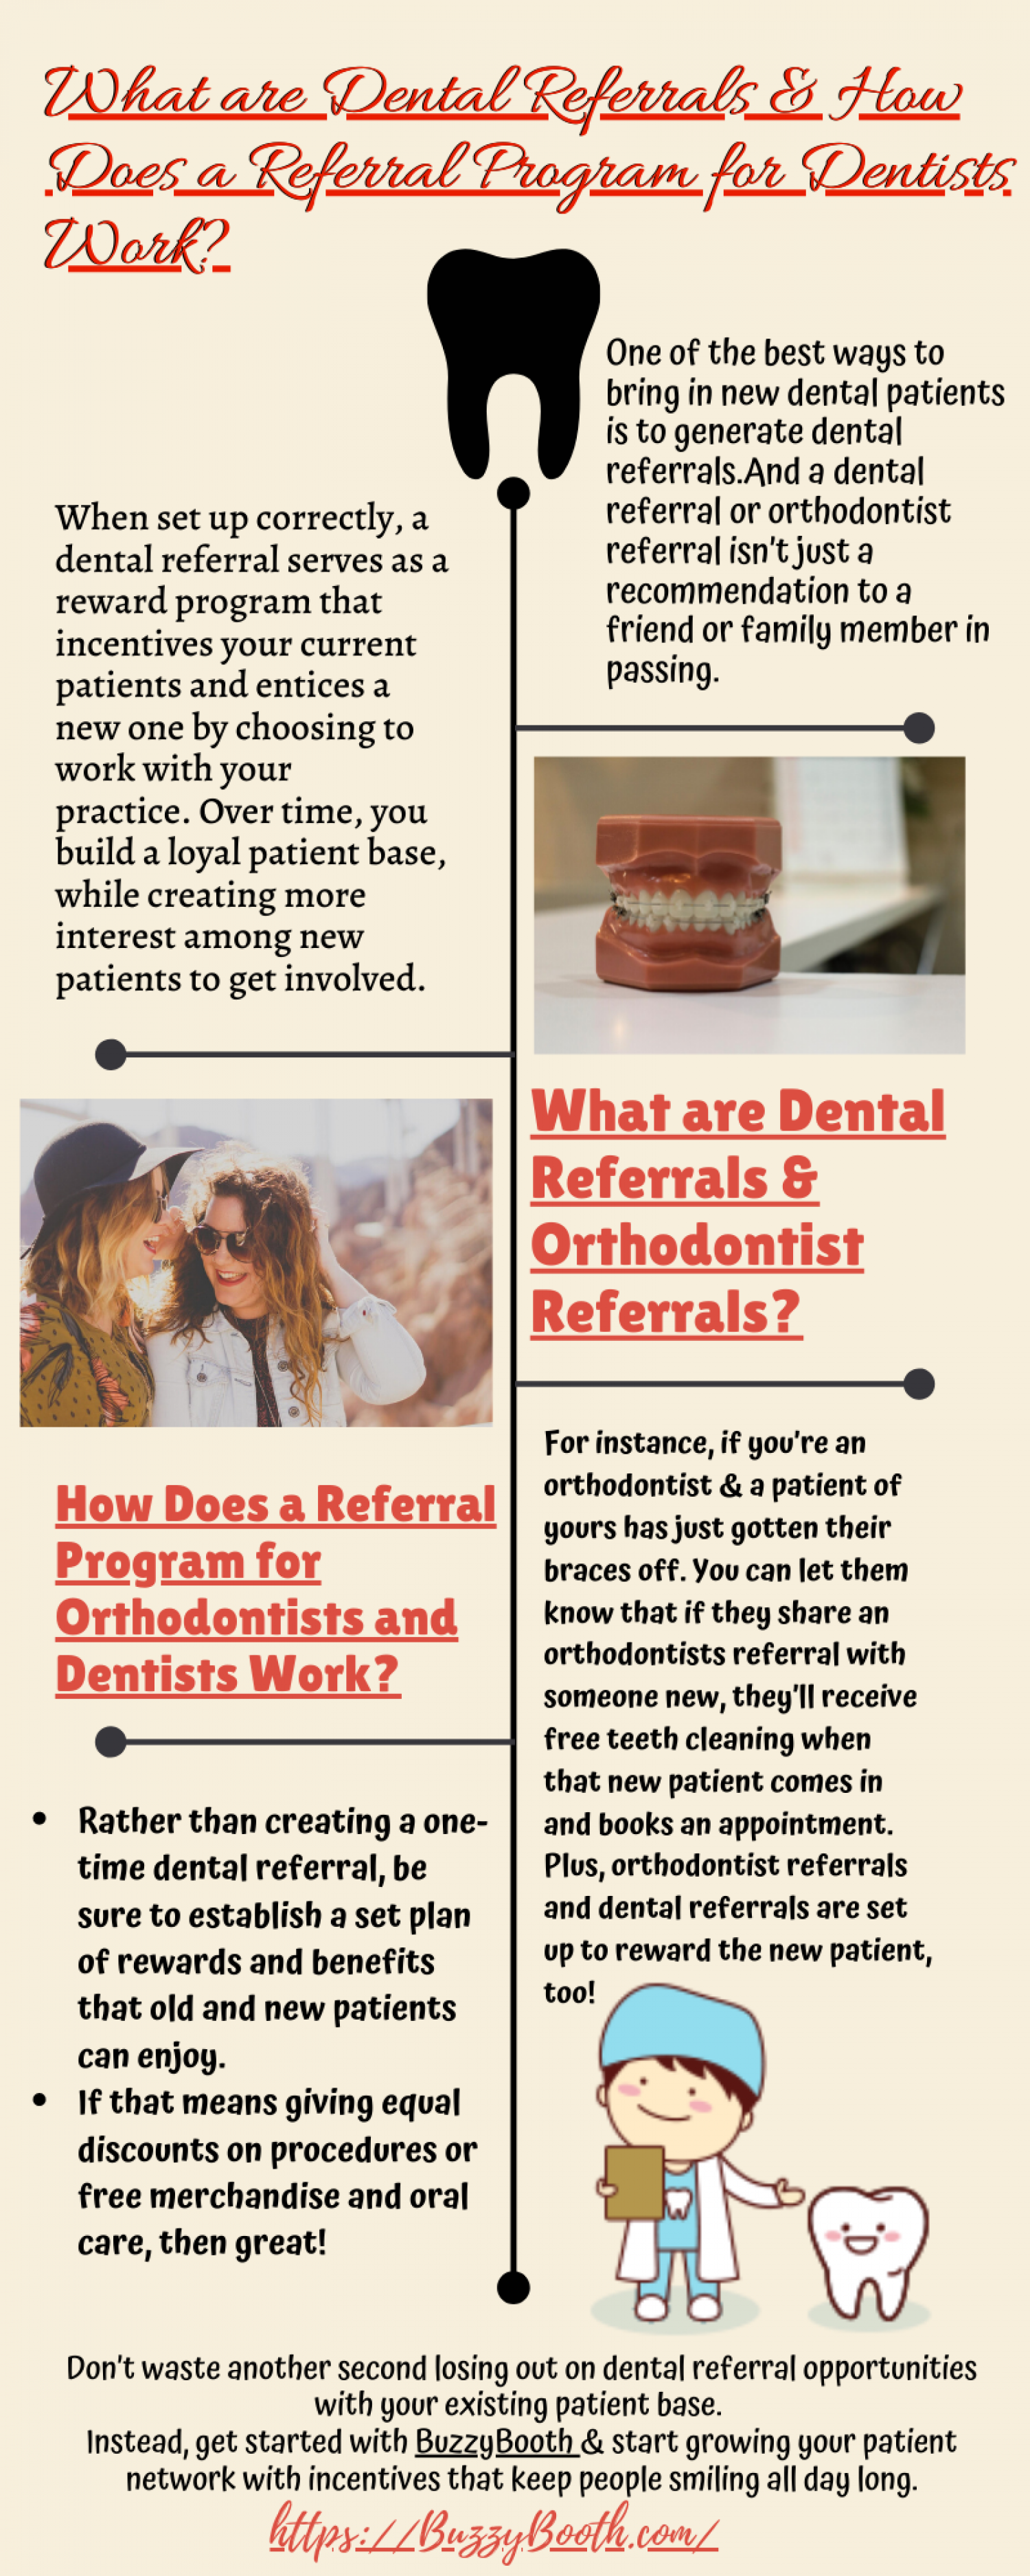 What are Dental Referrals and How Does a Referral Program for Dentists Work? Infographic